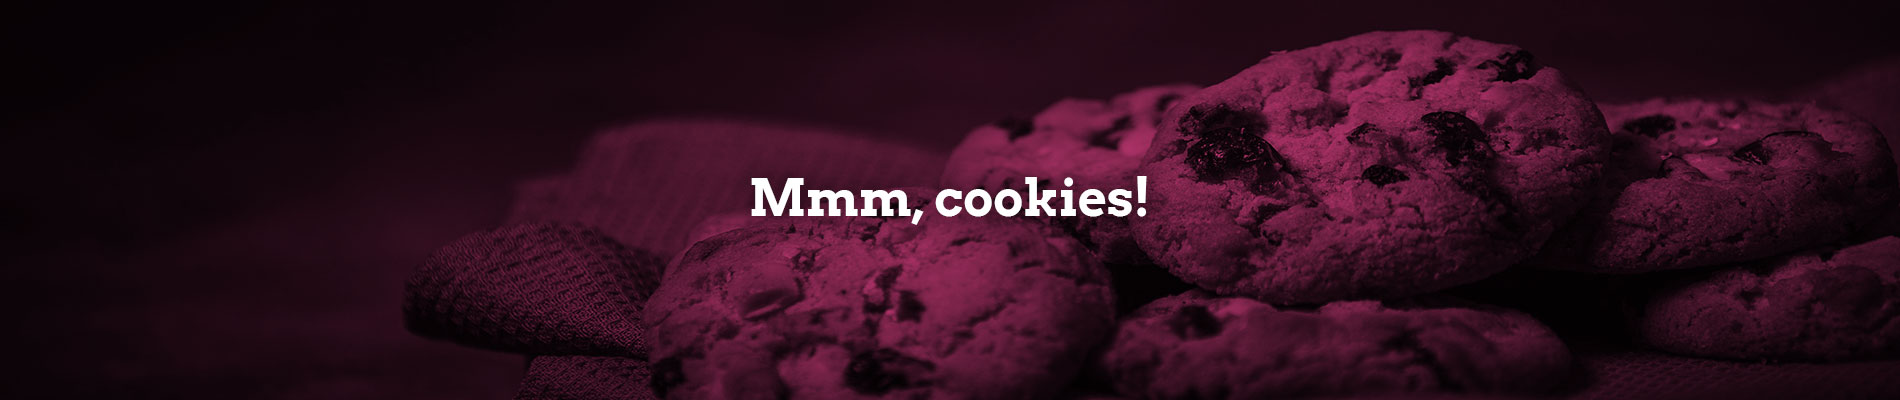 A plate of cookies - to symbolise the cookies used on this website